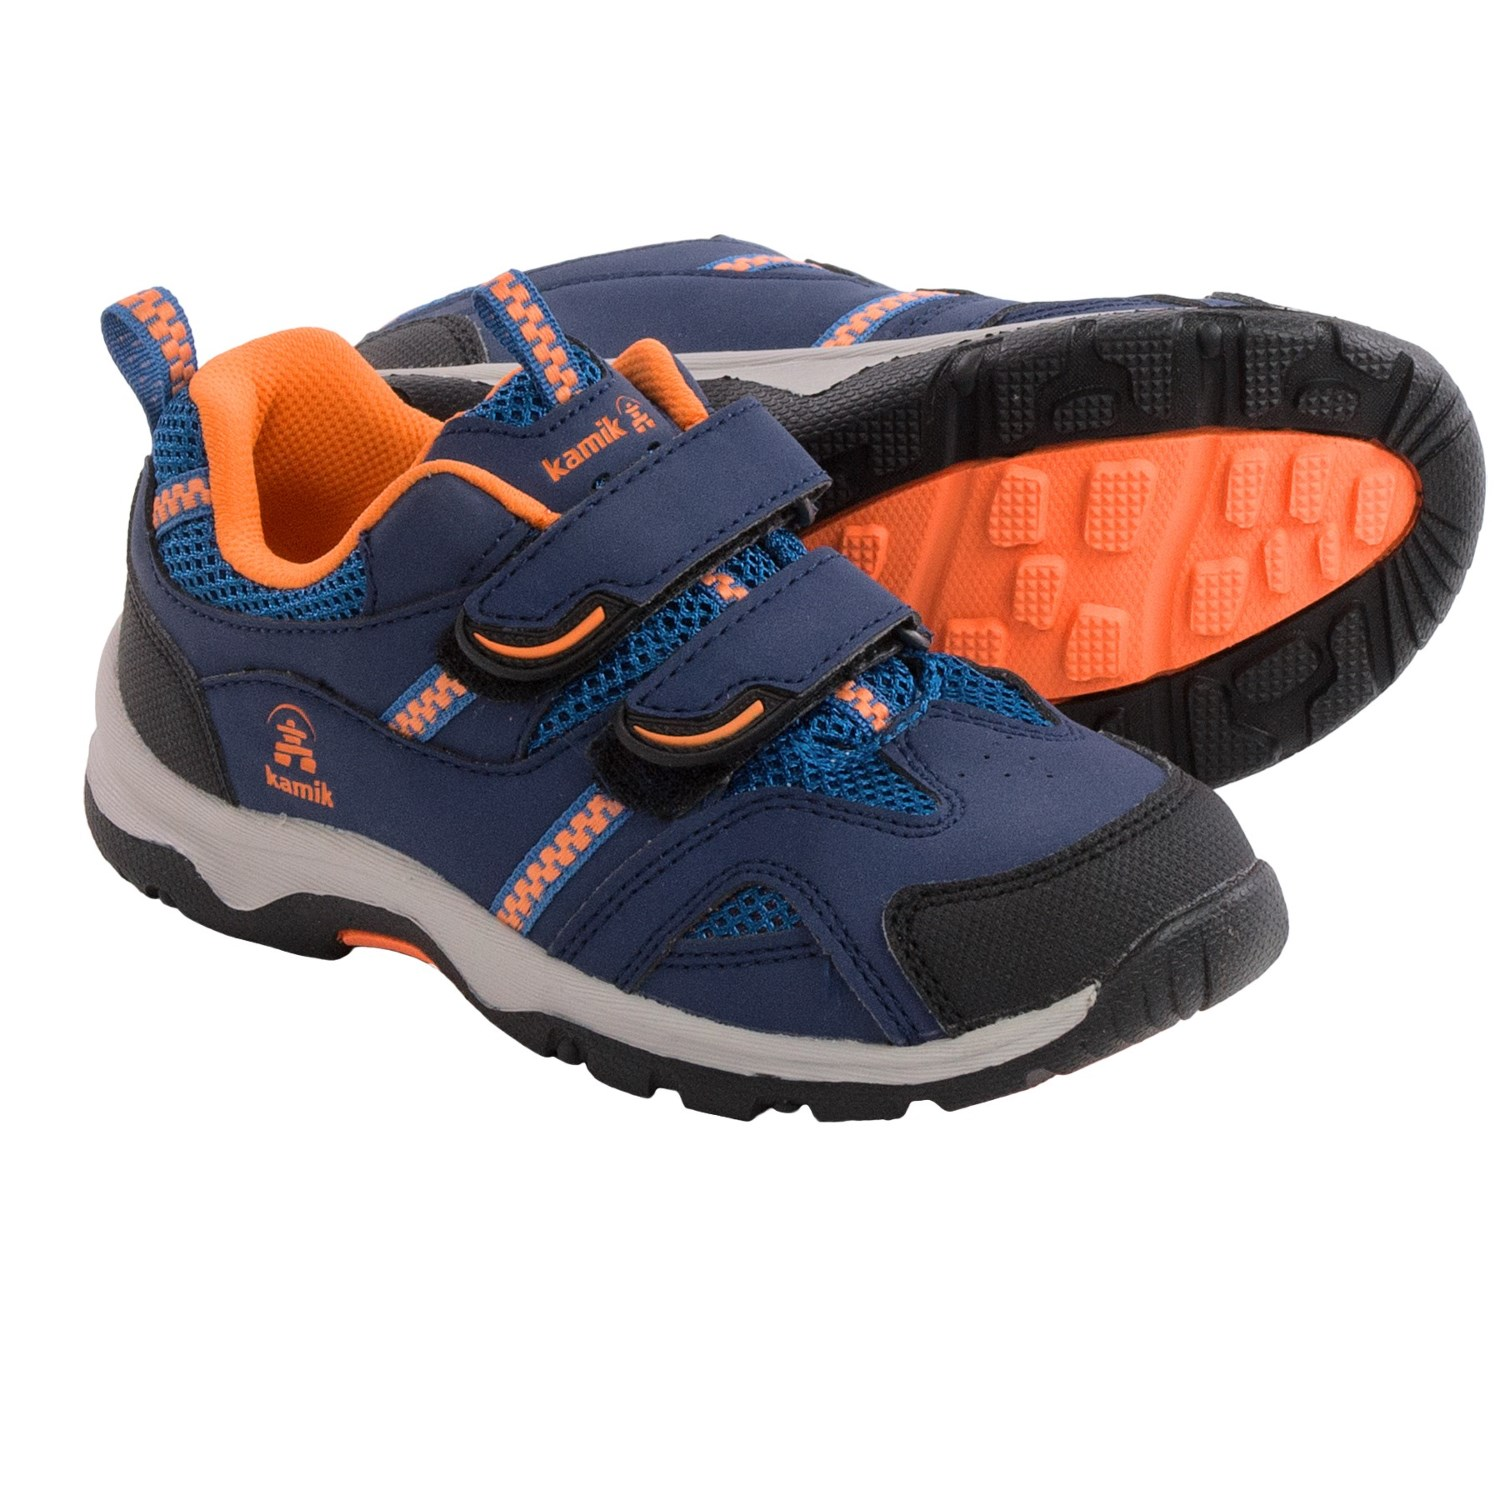 kamik frontier trail shoes for toddlers save 36